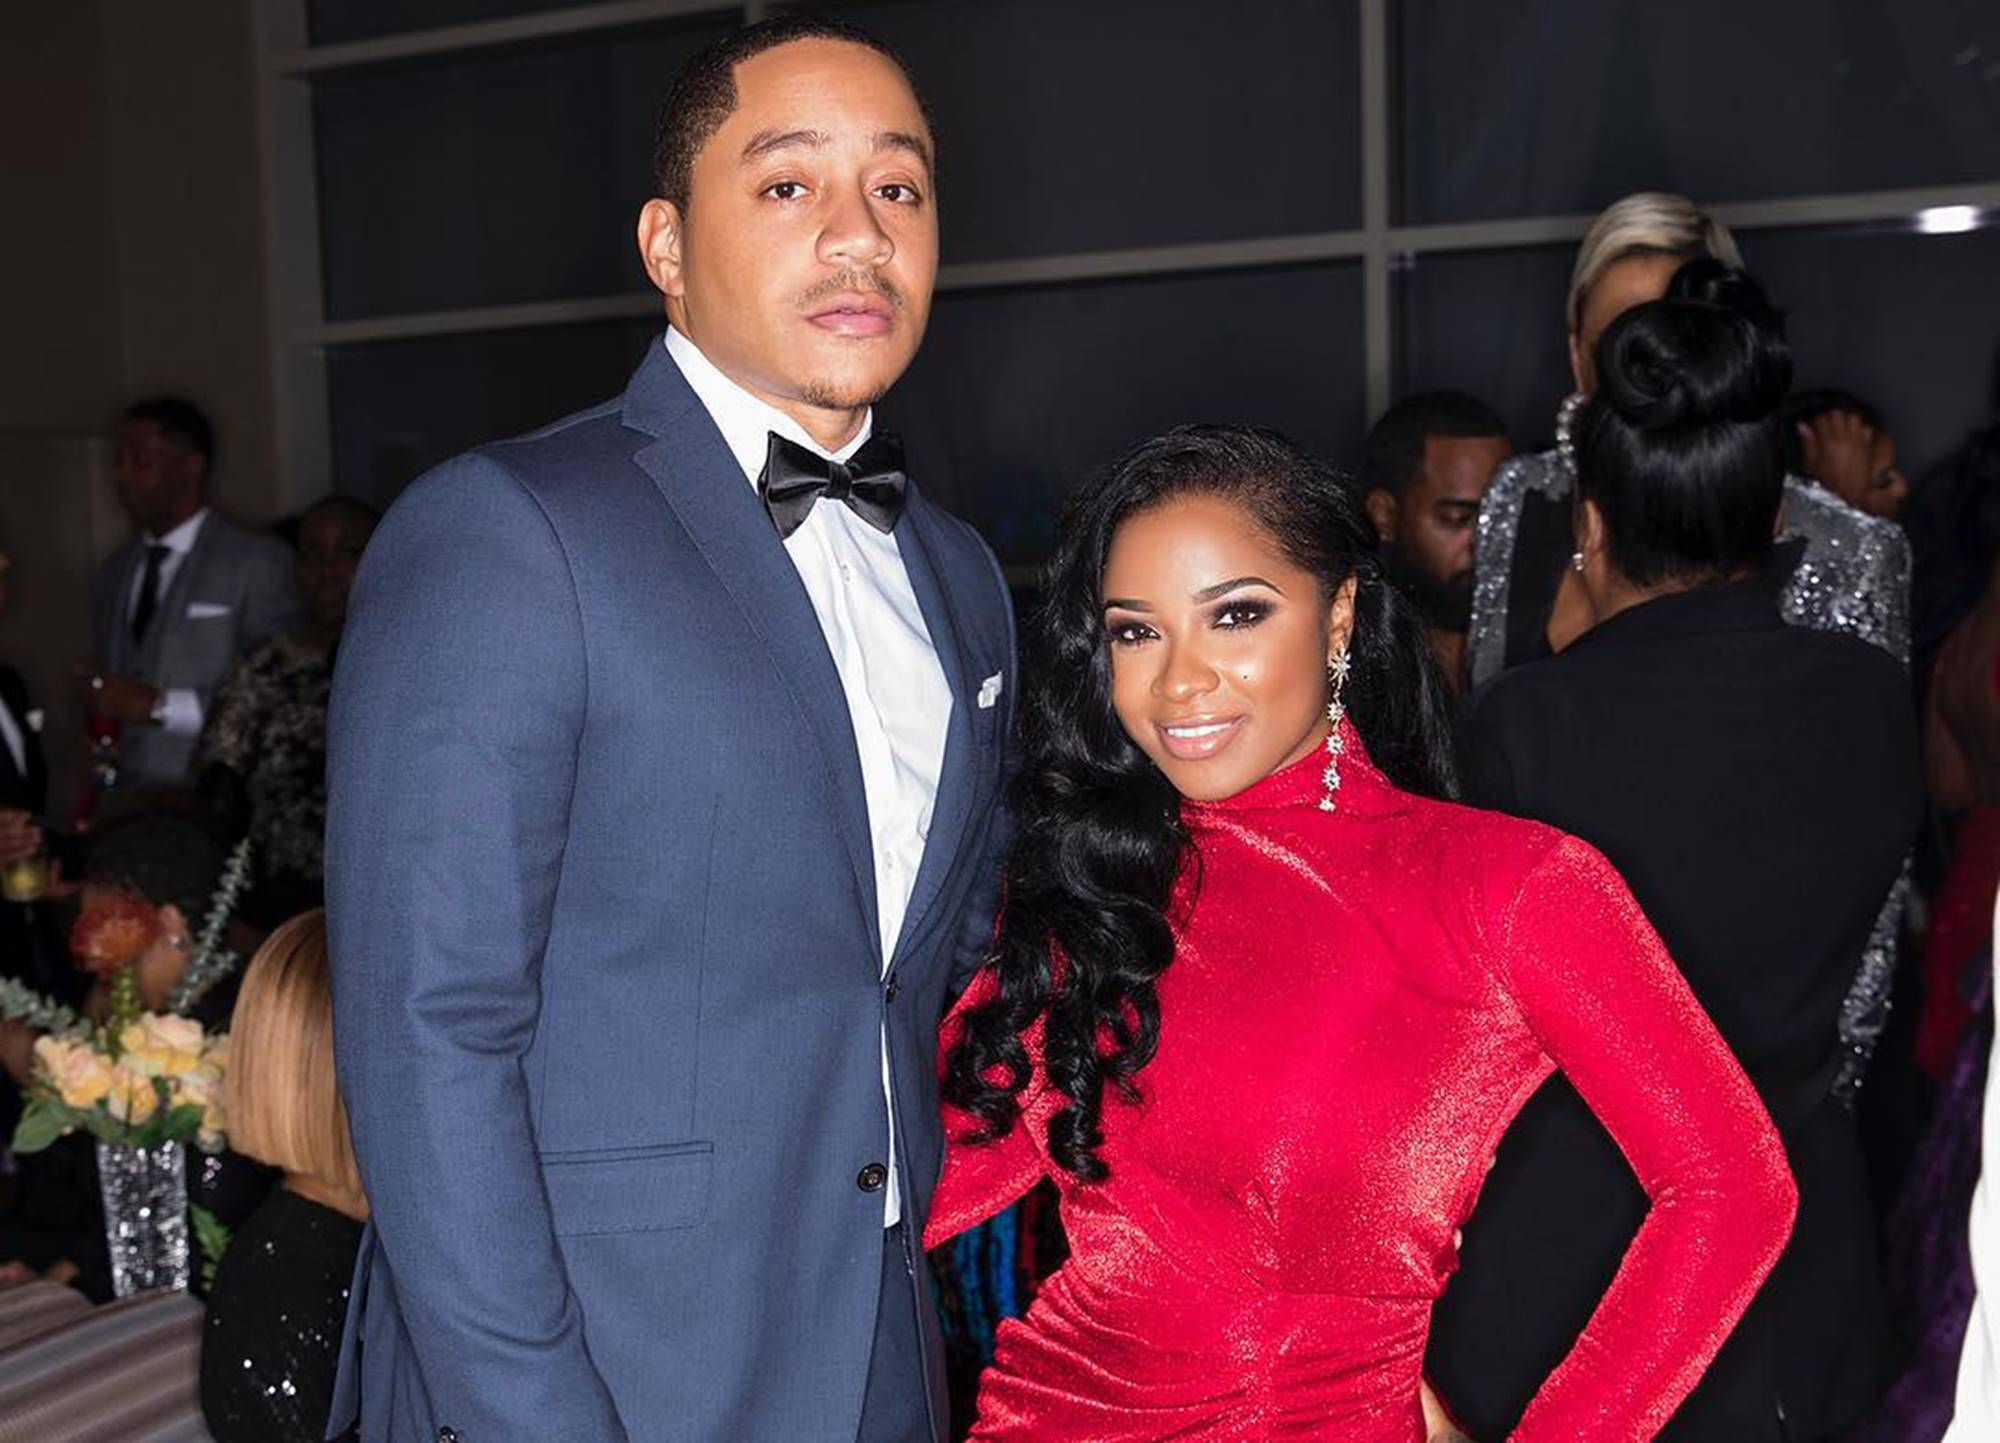 Toya Wright And Robert Rushing Bought Their First Home Together - Kandi Burruss Cannot Wait To Come Over